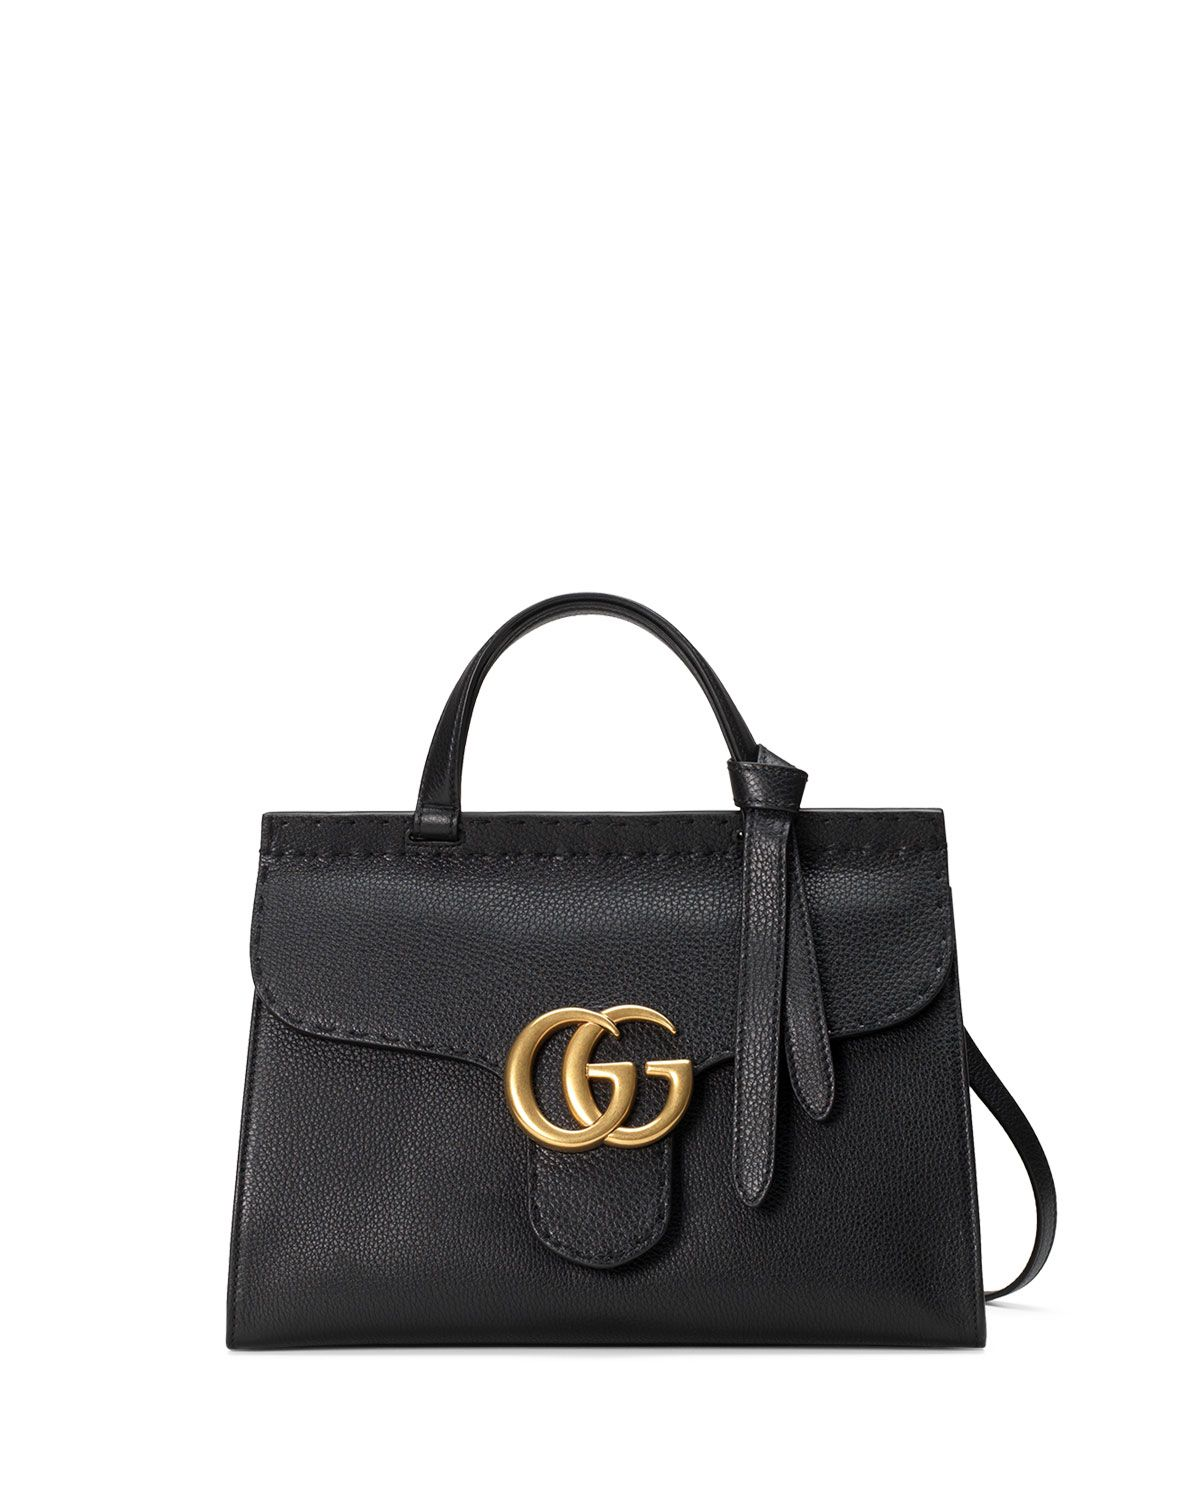 0e03756dd1c4 GG Marmont Small Top-Handle Satchel Bag Black | *Handbags, Wallets ...